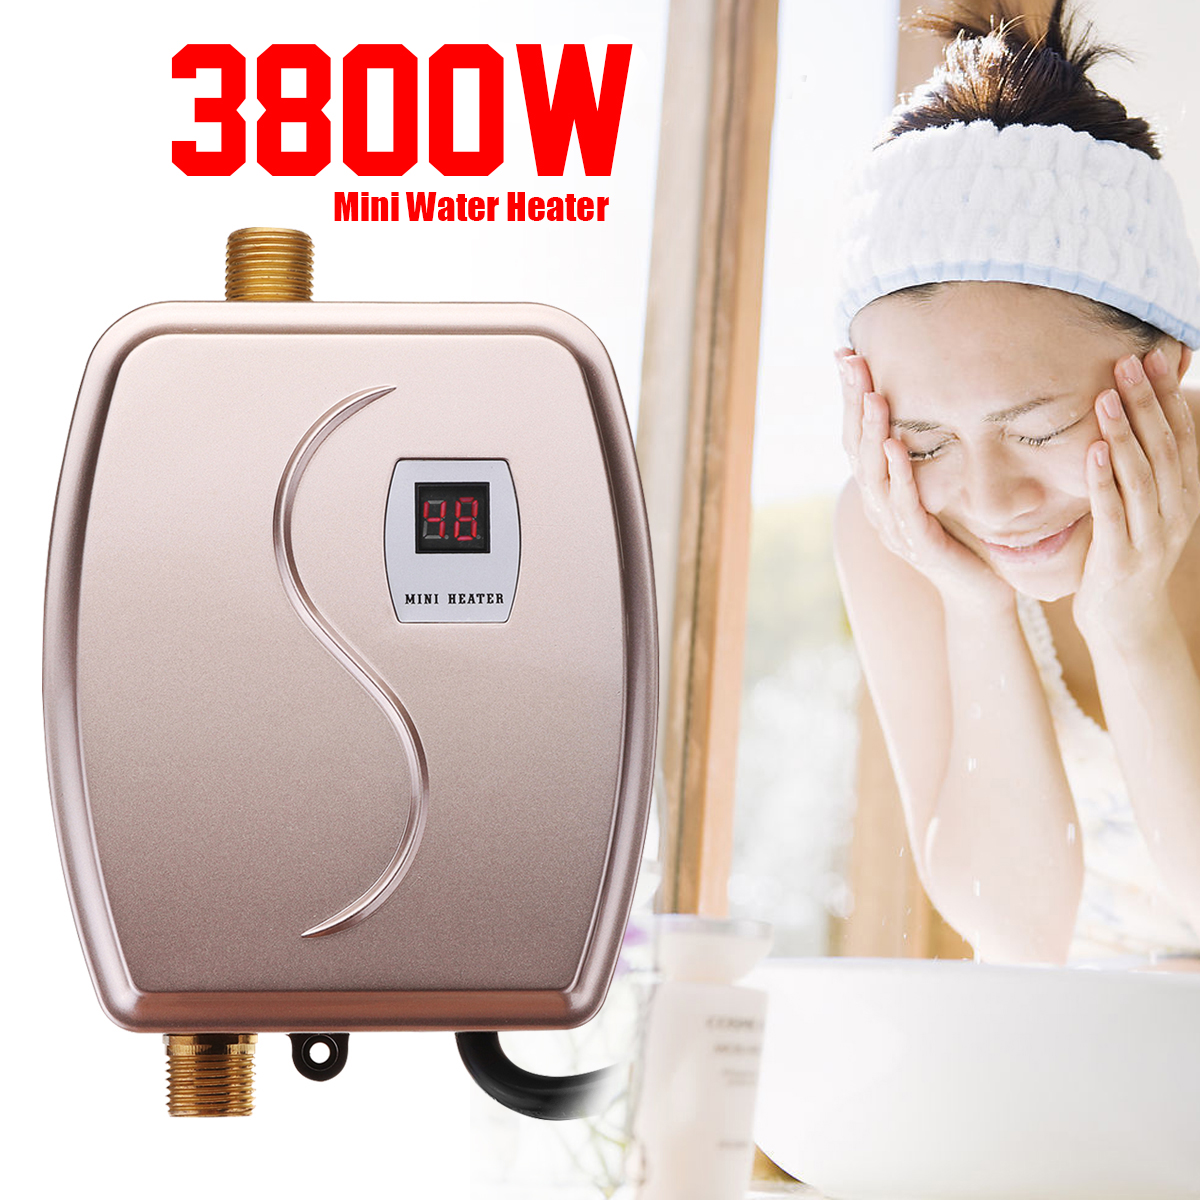 Water Boiler Electric Water Heater 3800W Mini Instant Heating LED Display Electric Hot Water Heater Leakage Protection Kitchen